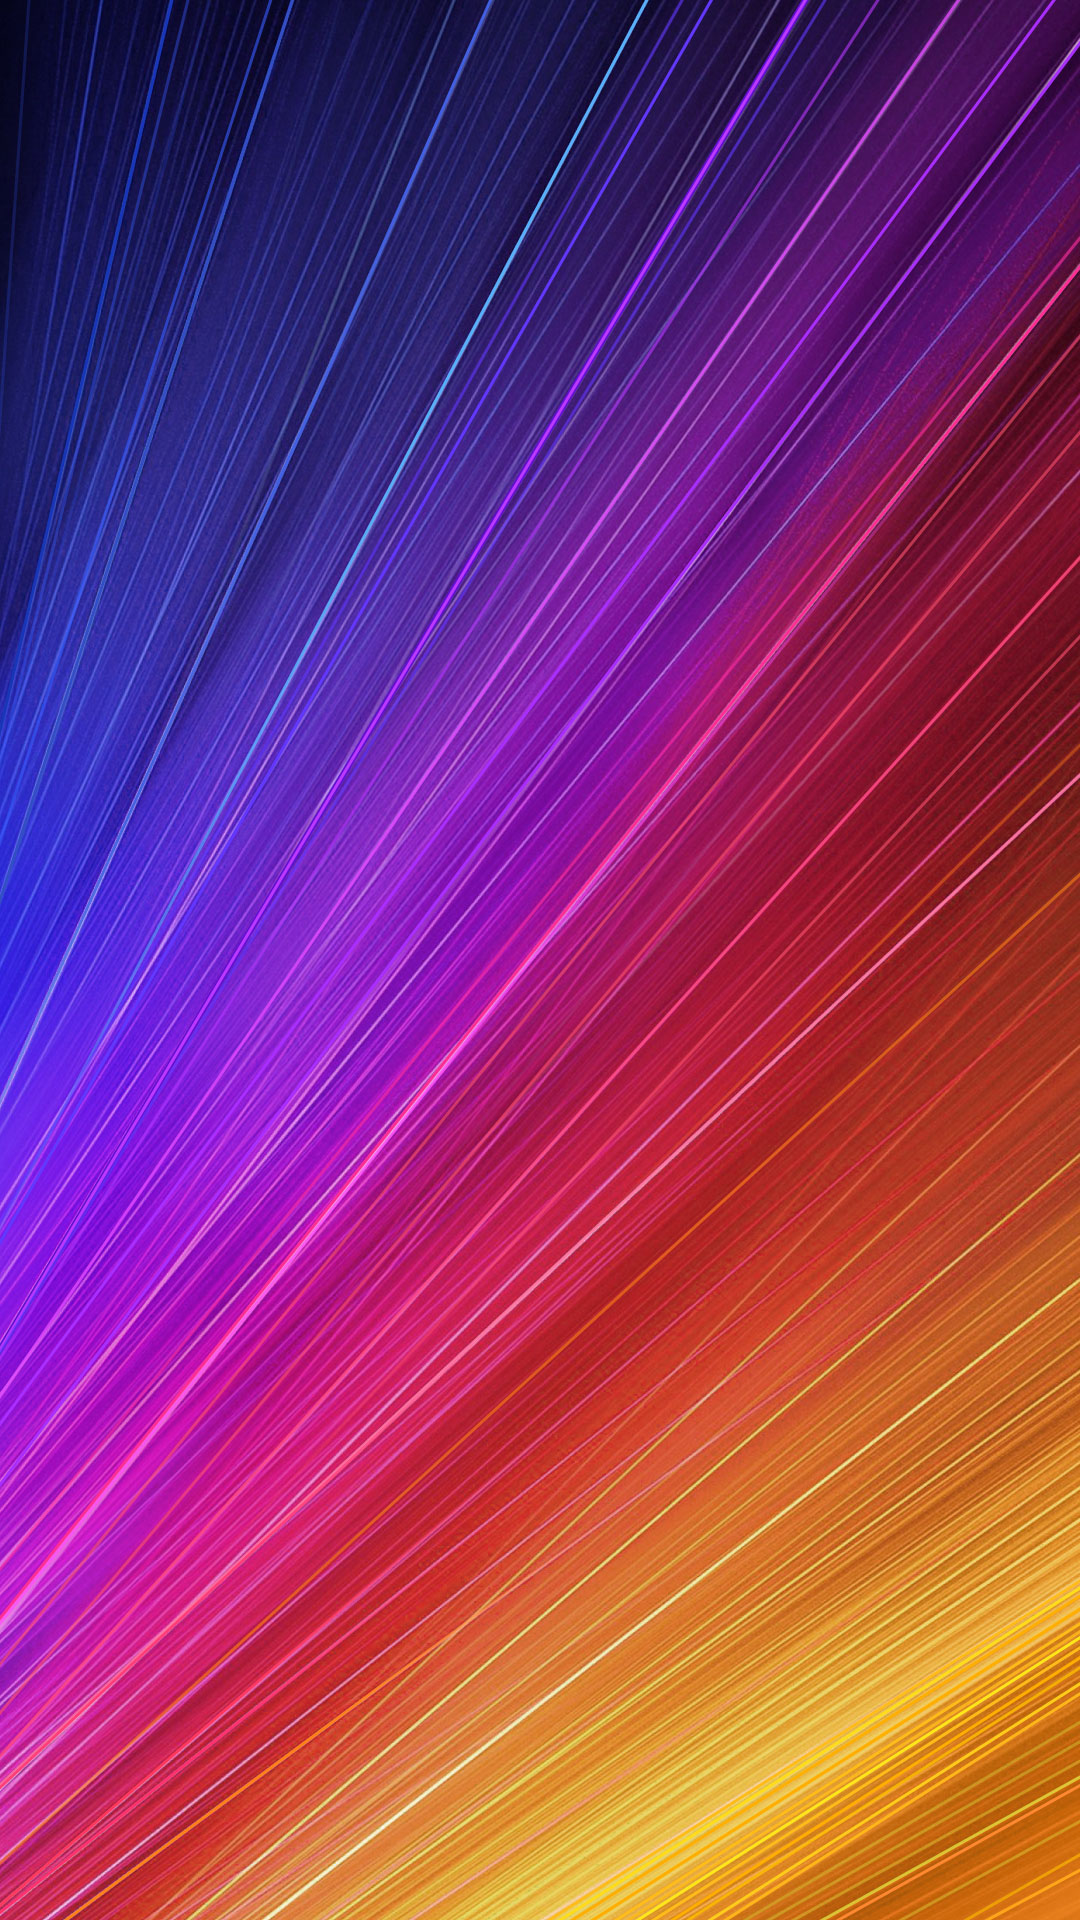 mi 5s stock wallpaper